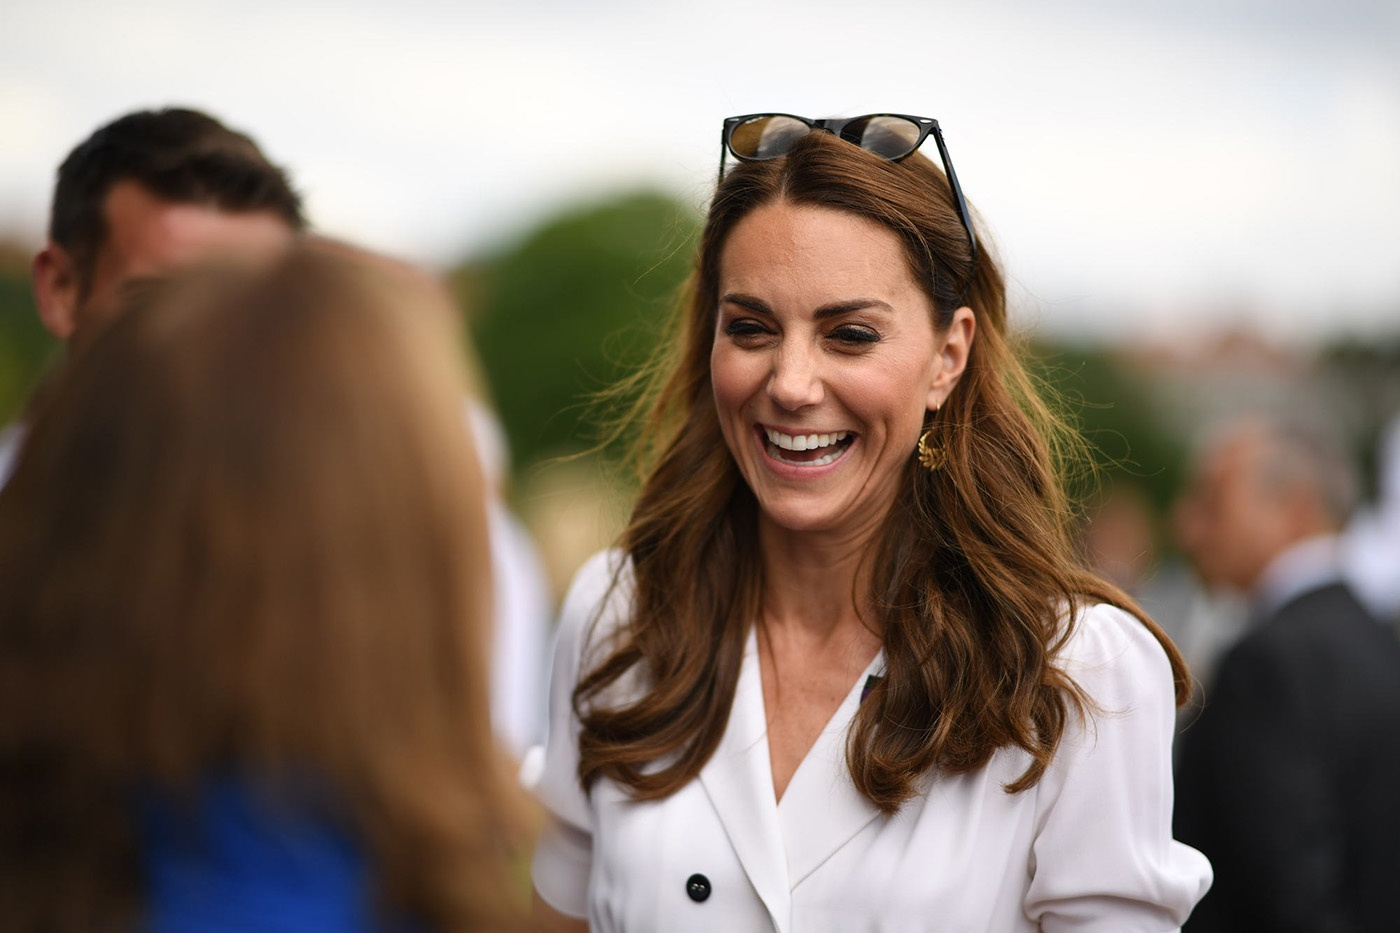 Duchess of Cambride visited Wimbledon as the patron of the Lawn Tennis wearing white suzannah dress